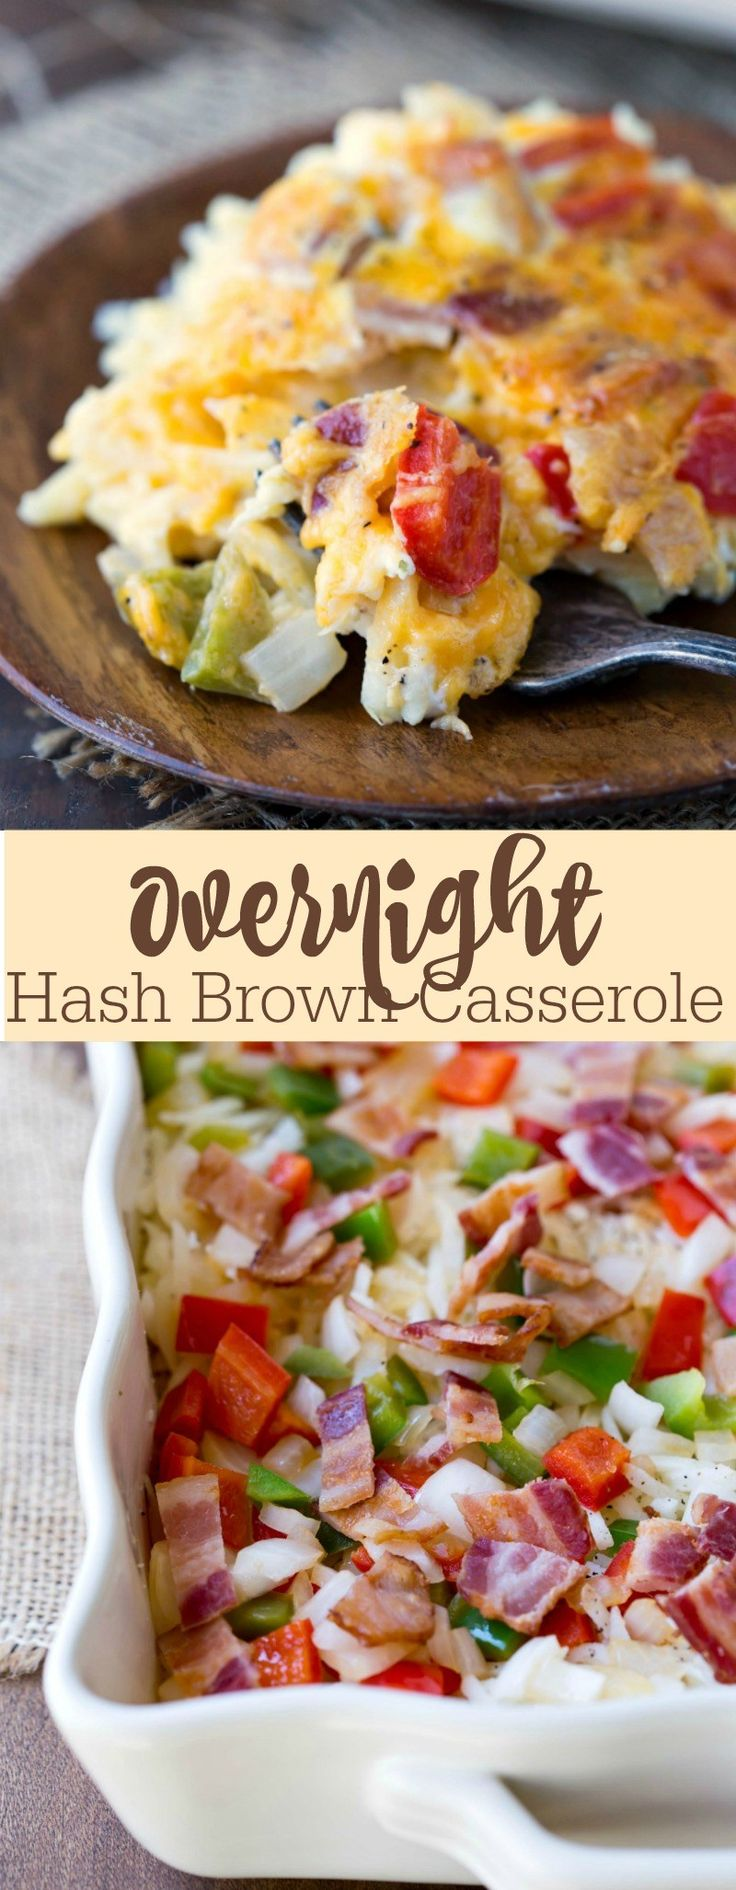 Overnight Hash Brown Casserole Recipe - great make ahead Easter morning breakfast or brunch recipe!